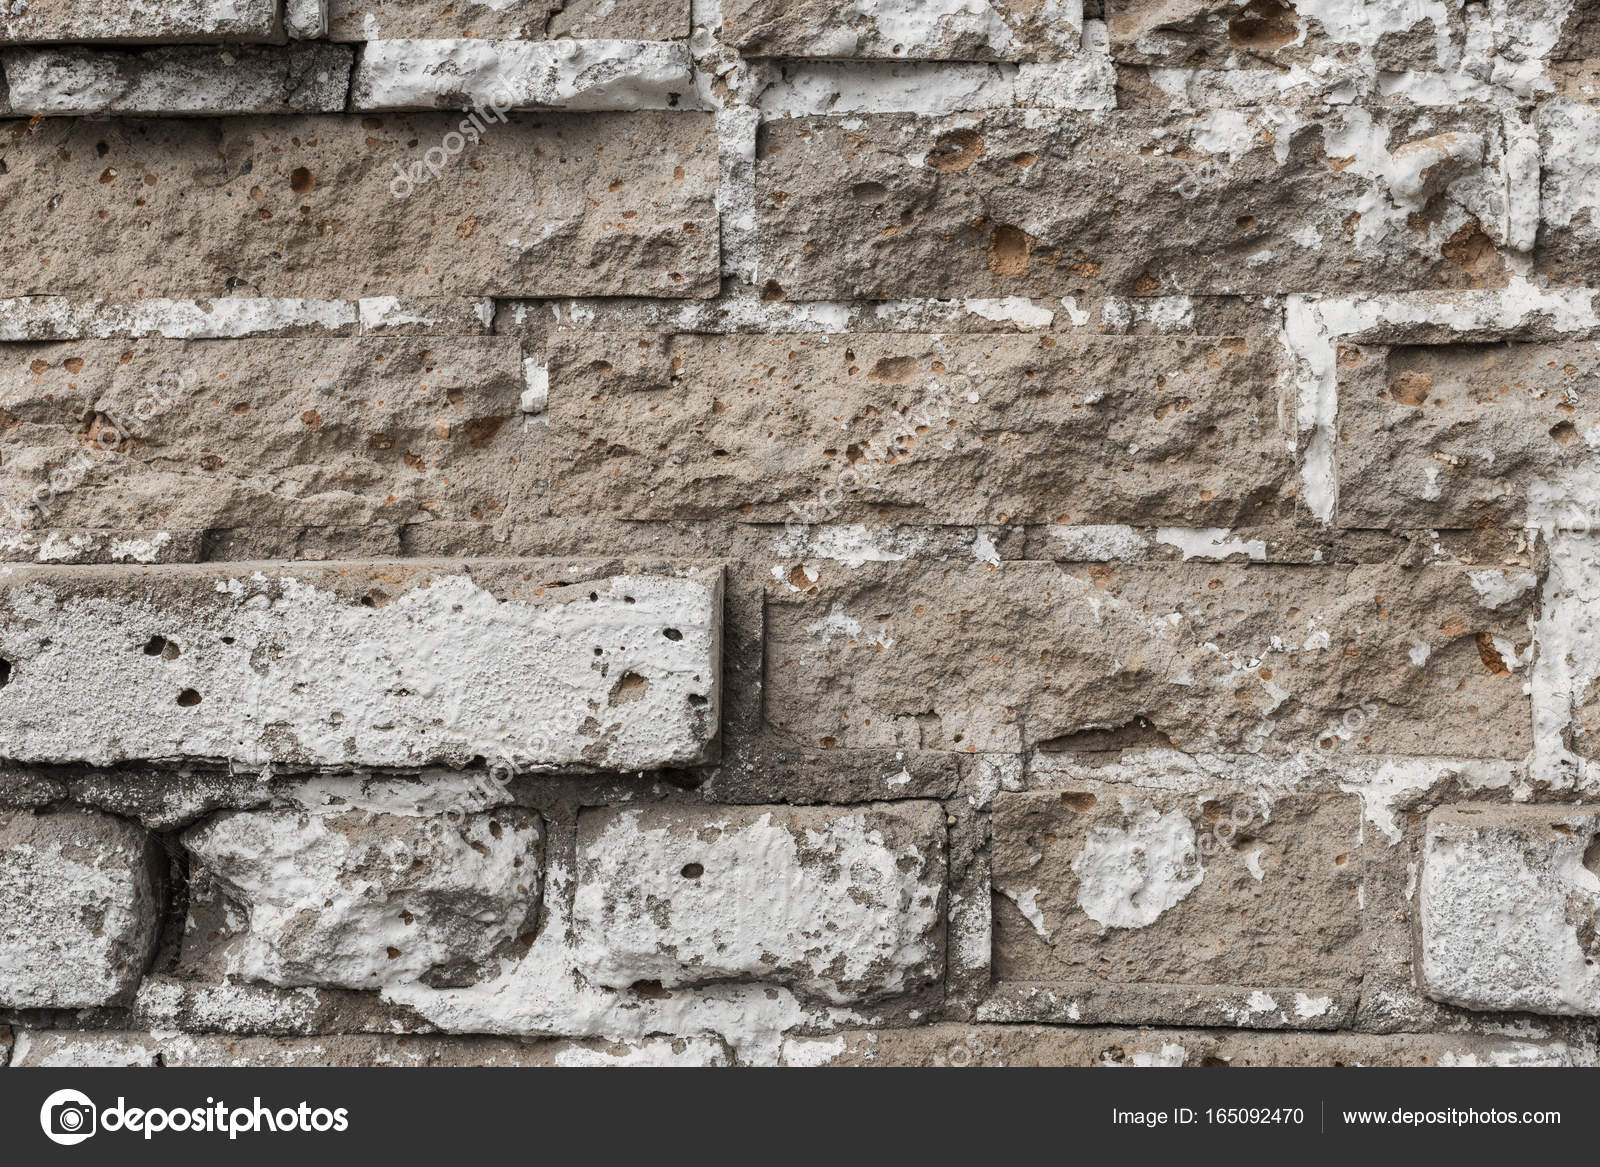 Texture Of An Old Ruined Brick Wall Ancient Building Close Up Bstract Background Photo By Nnorozoff